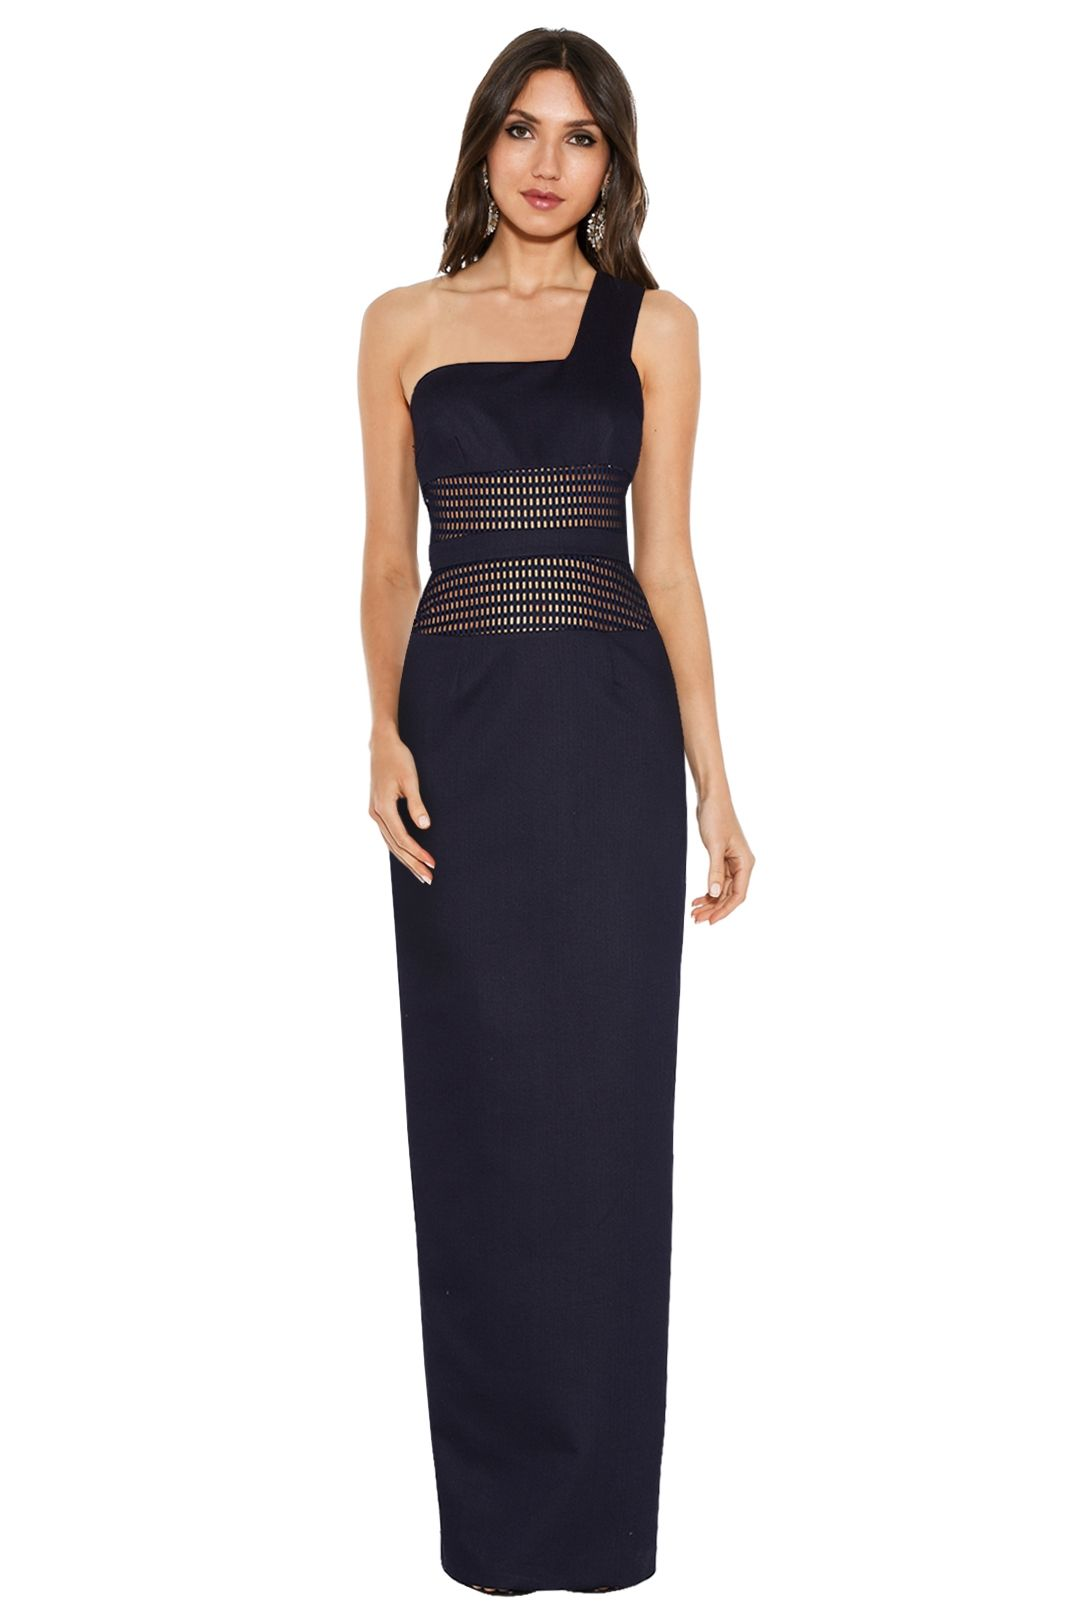 By Johnny - Mesh Panel Sharpened Gown - Navy - Front